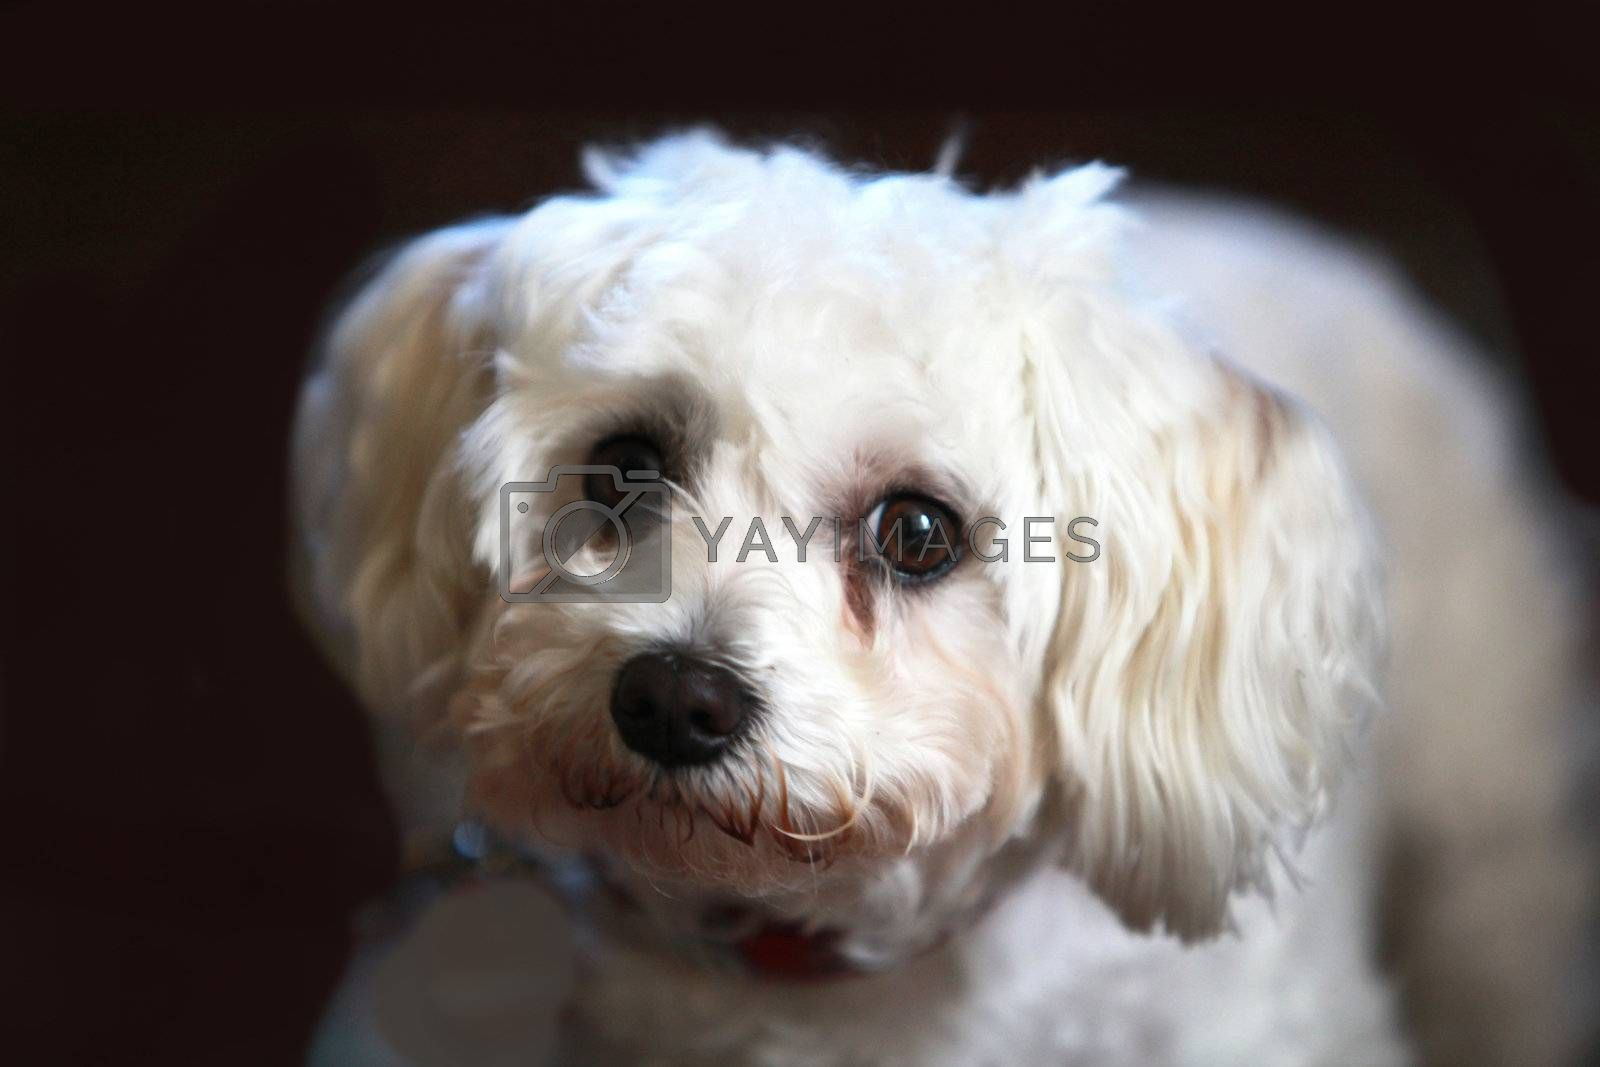 Royalty free image of white dog looks into the camera by Farina6000